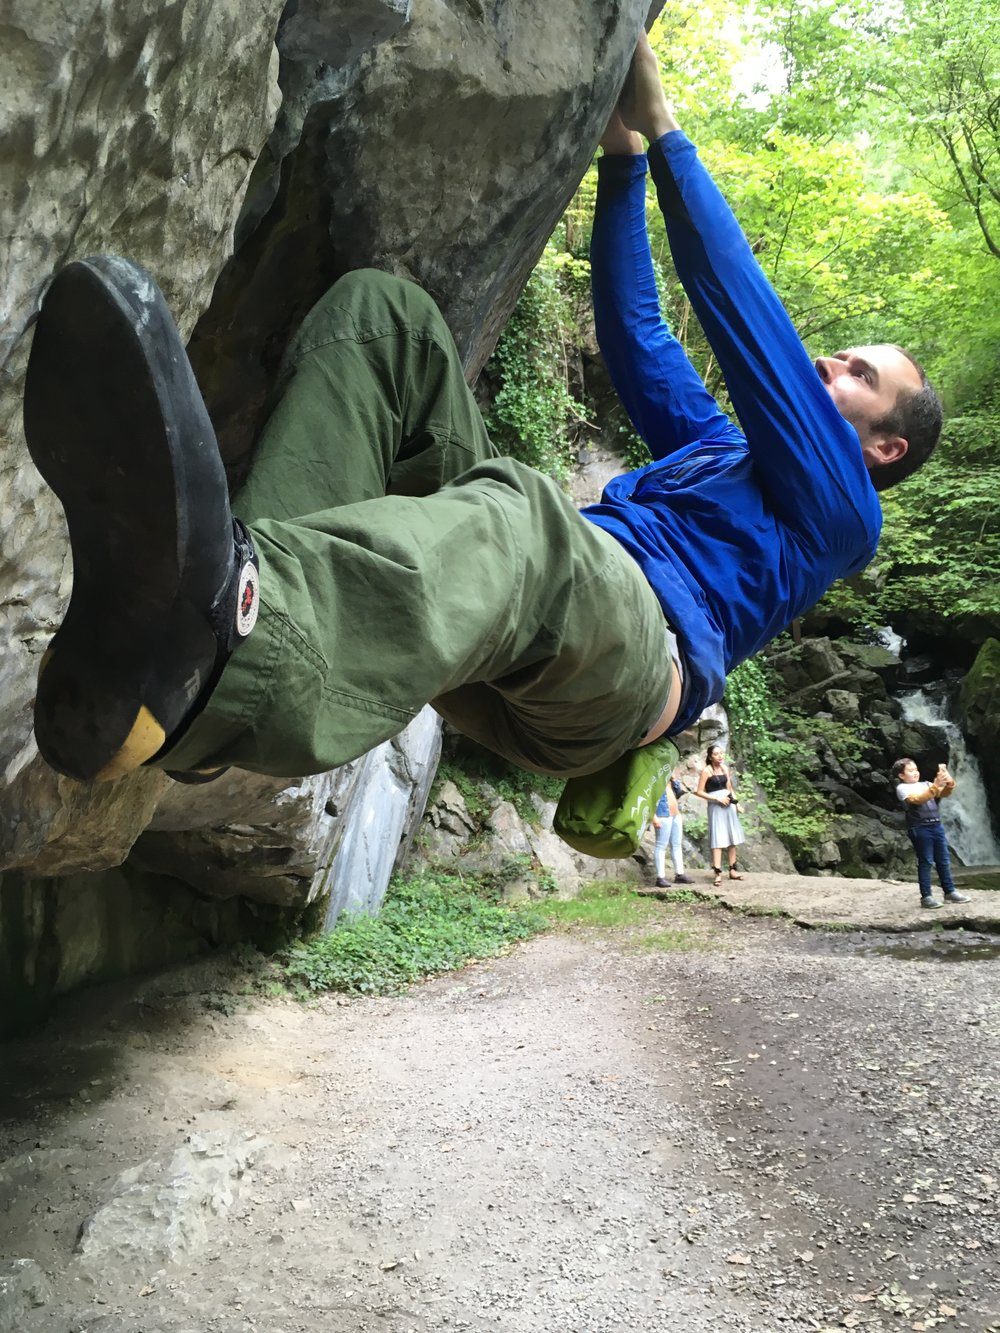 Bouldering at Dinas Rock in South Wales.